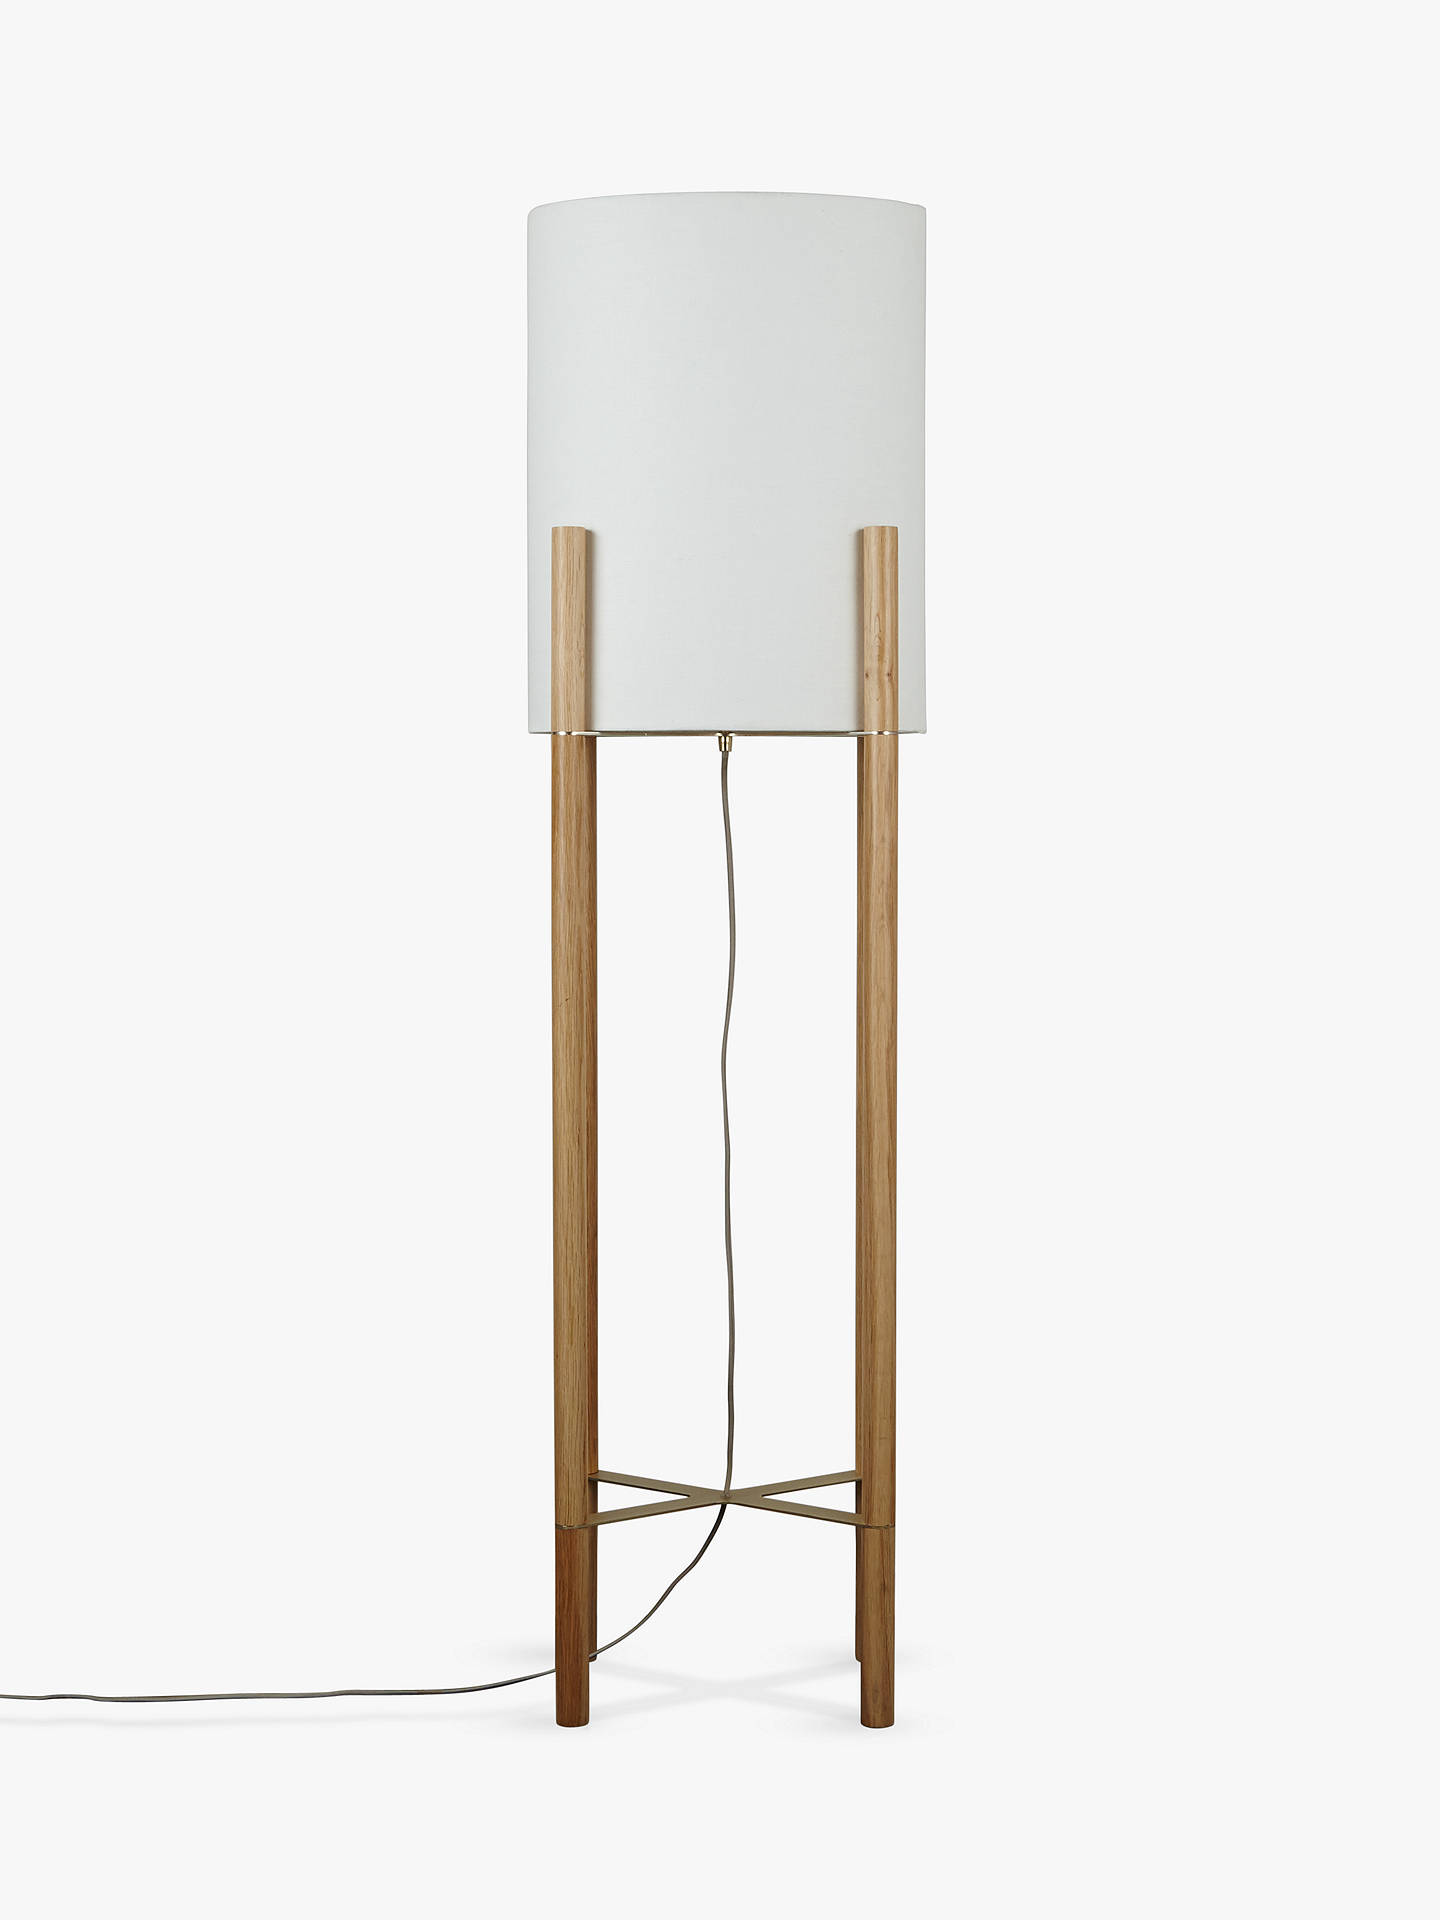 Design project by john lewis oval shade floor lamp oak at john lewis partners for John lewis home design service reviews